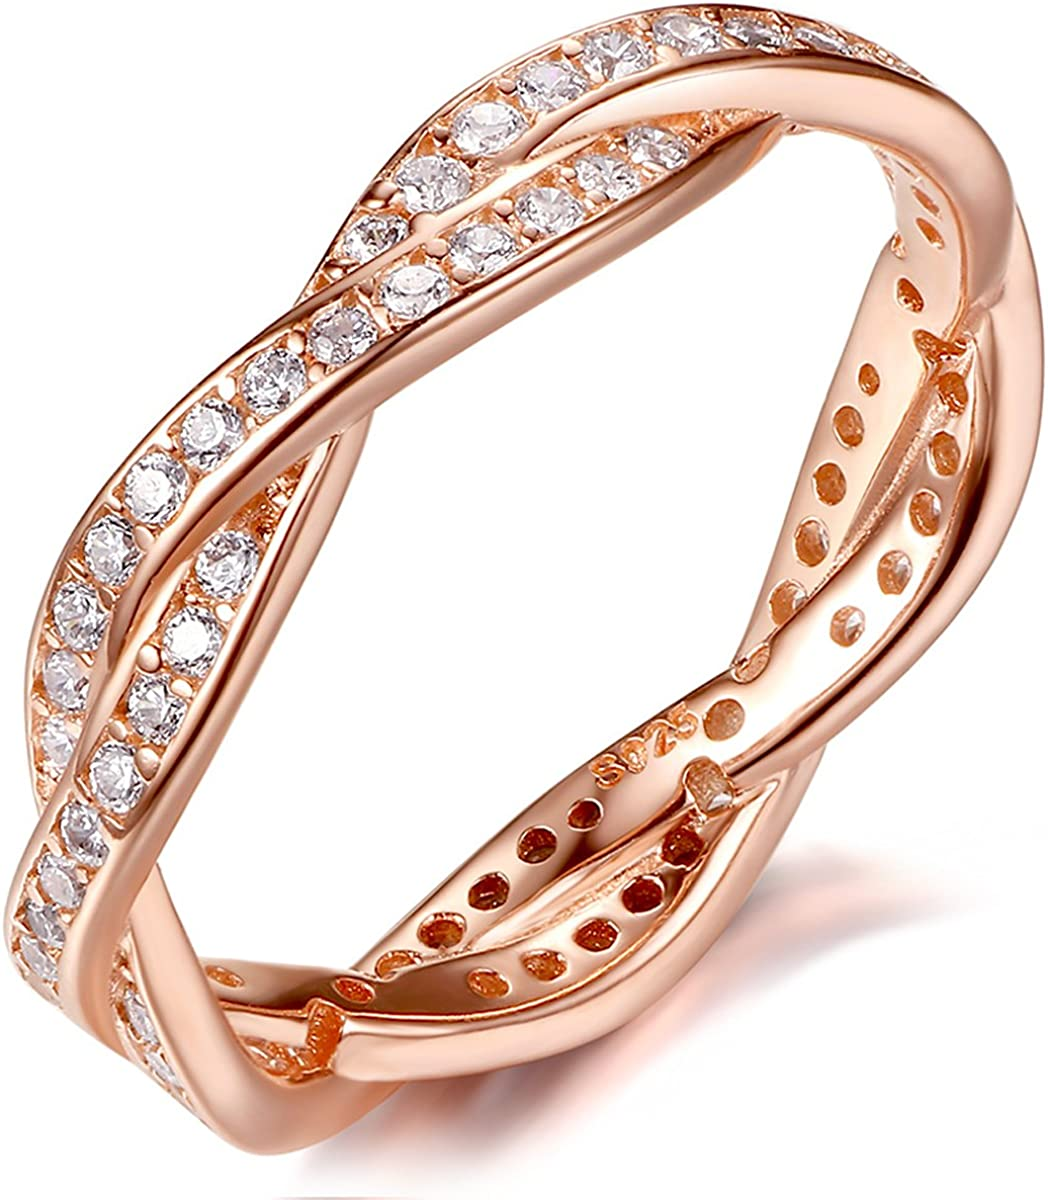 Brightt Rose Gold Plated Cz Eternity Band .925 Sterling Silver Ring Size 10